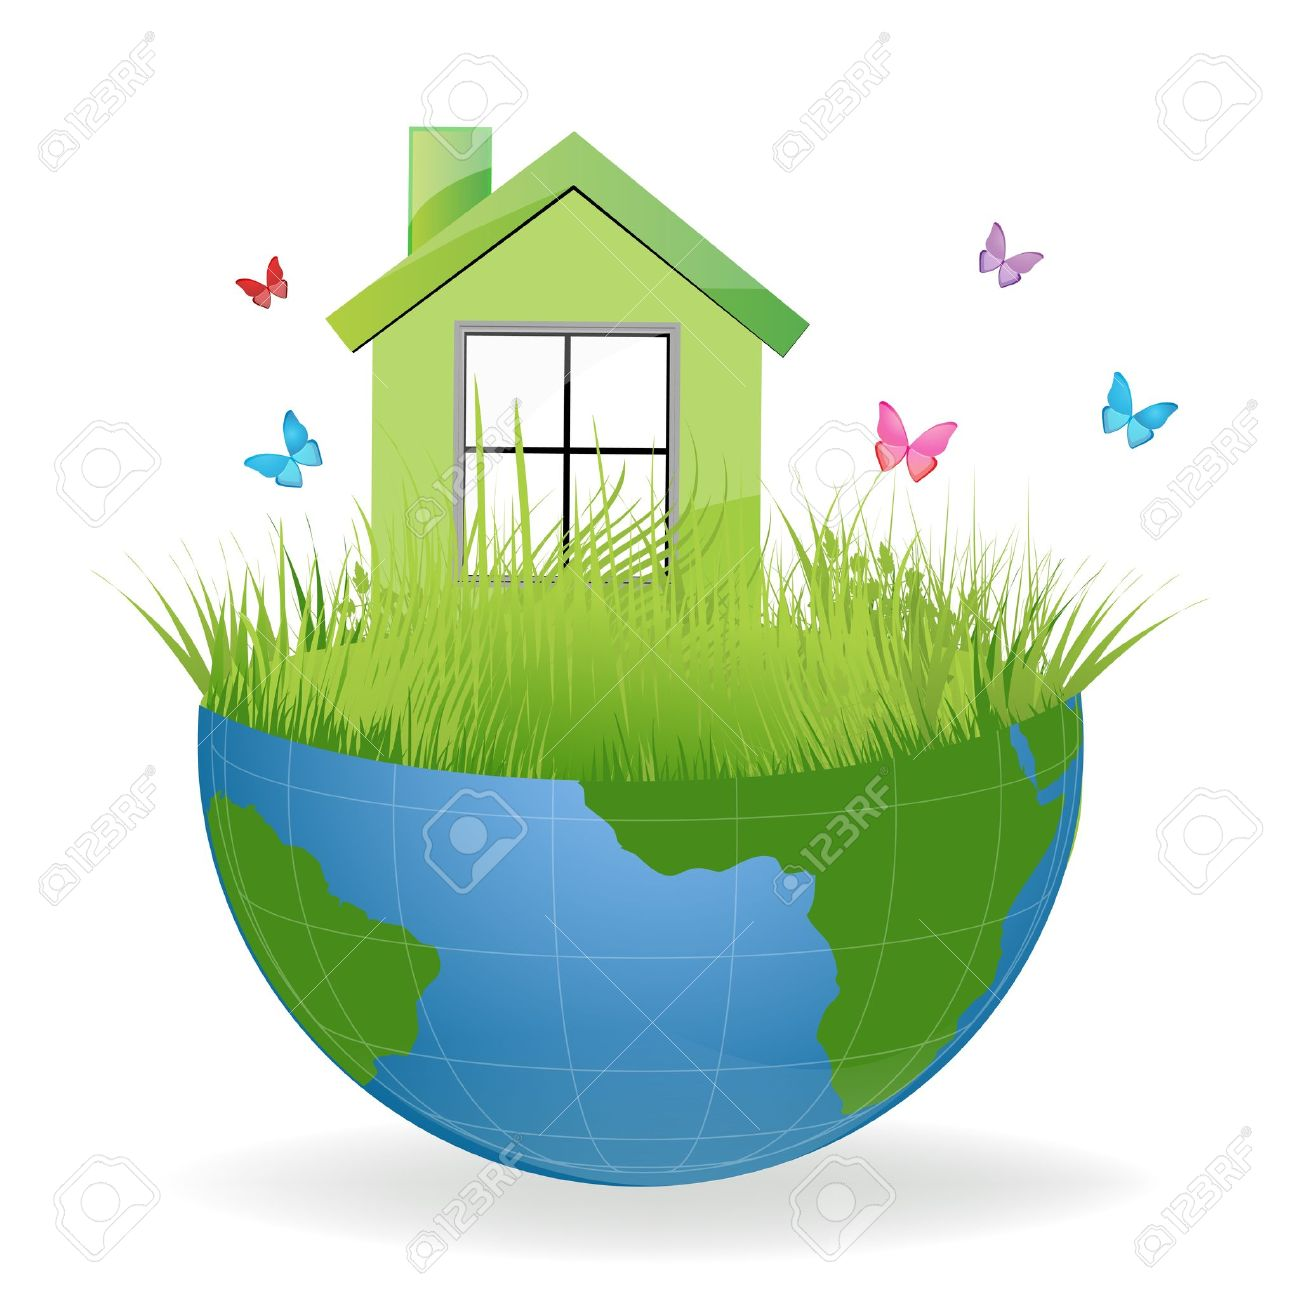 Clipart of a house on the earth.